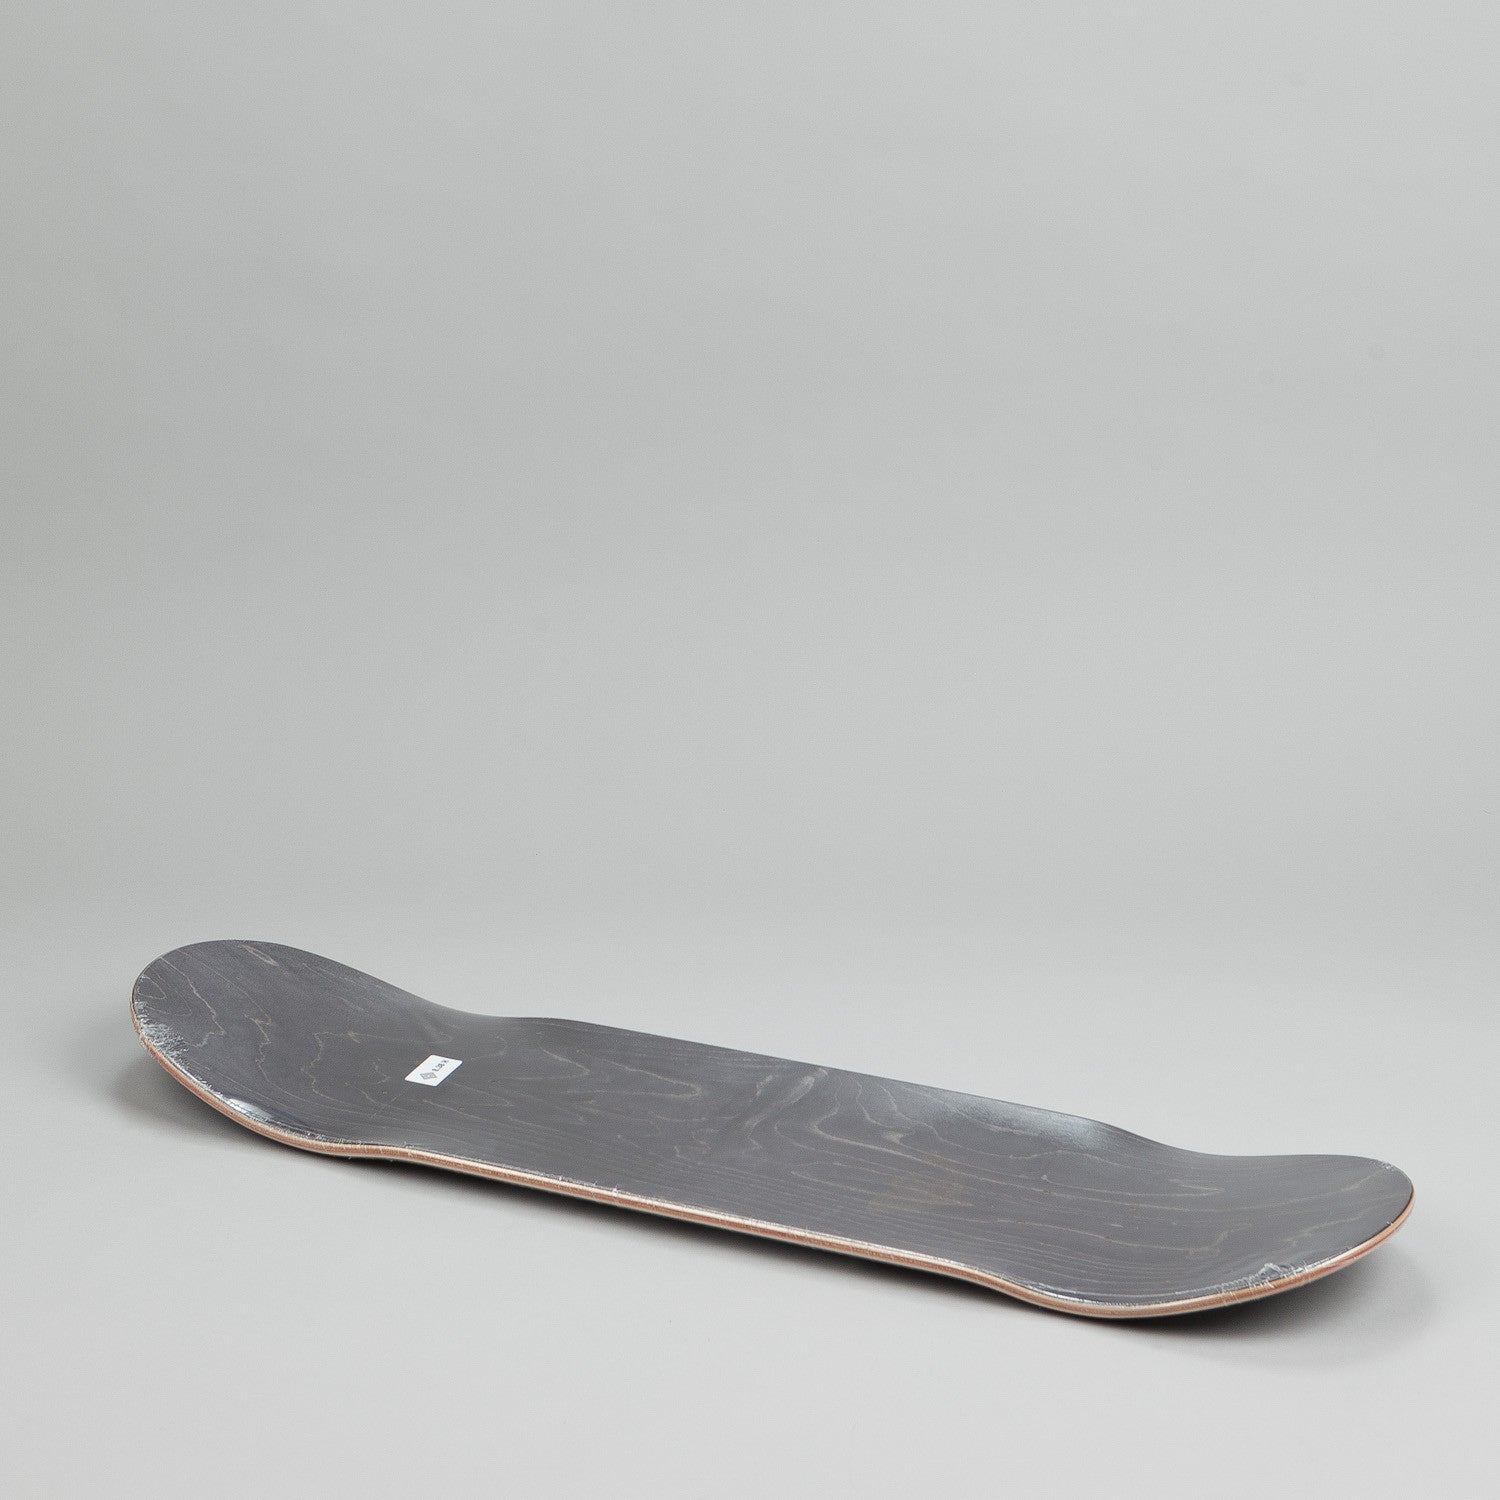 The National Skateboard Co X Post DS Deck Navy 8.38""